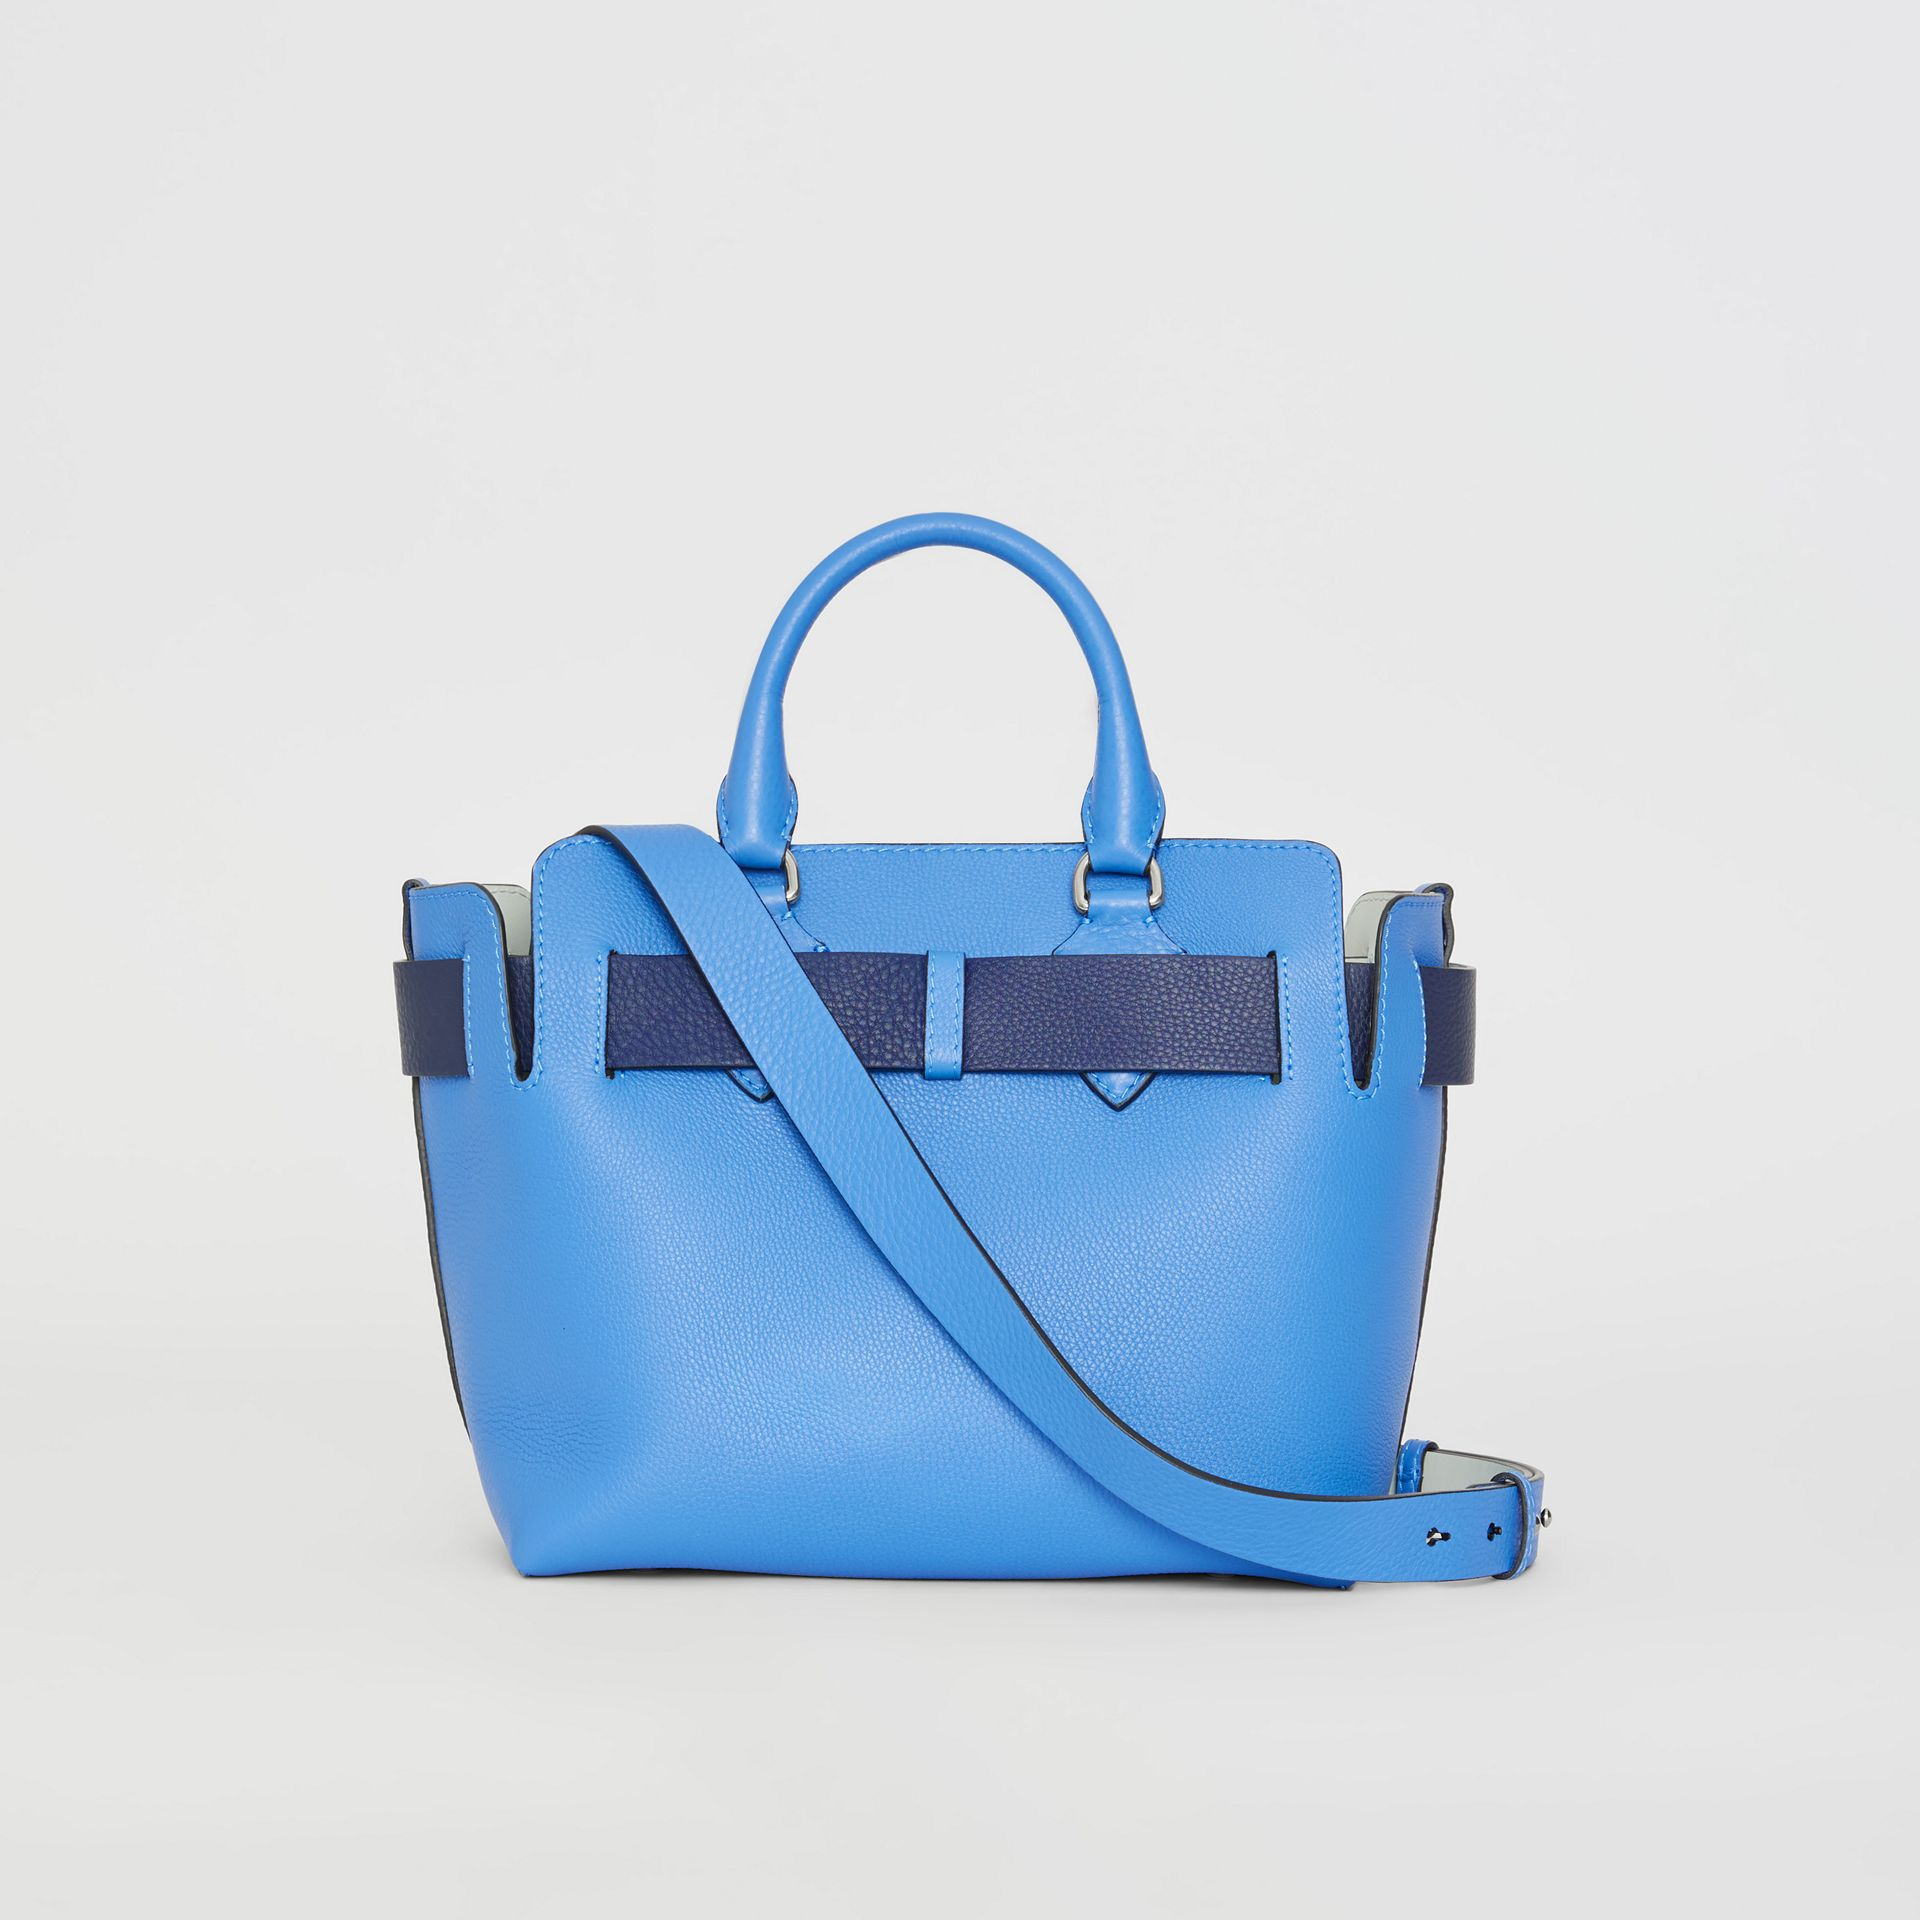 Borsa The Belt piccola in pelle (Blu Ortensia) - Donna | Burberry - immagine della galleria 6